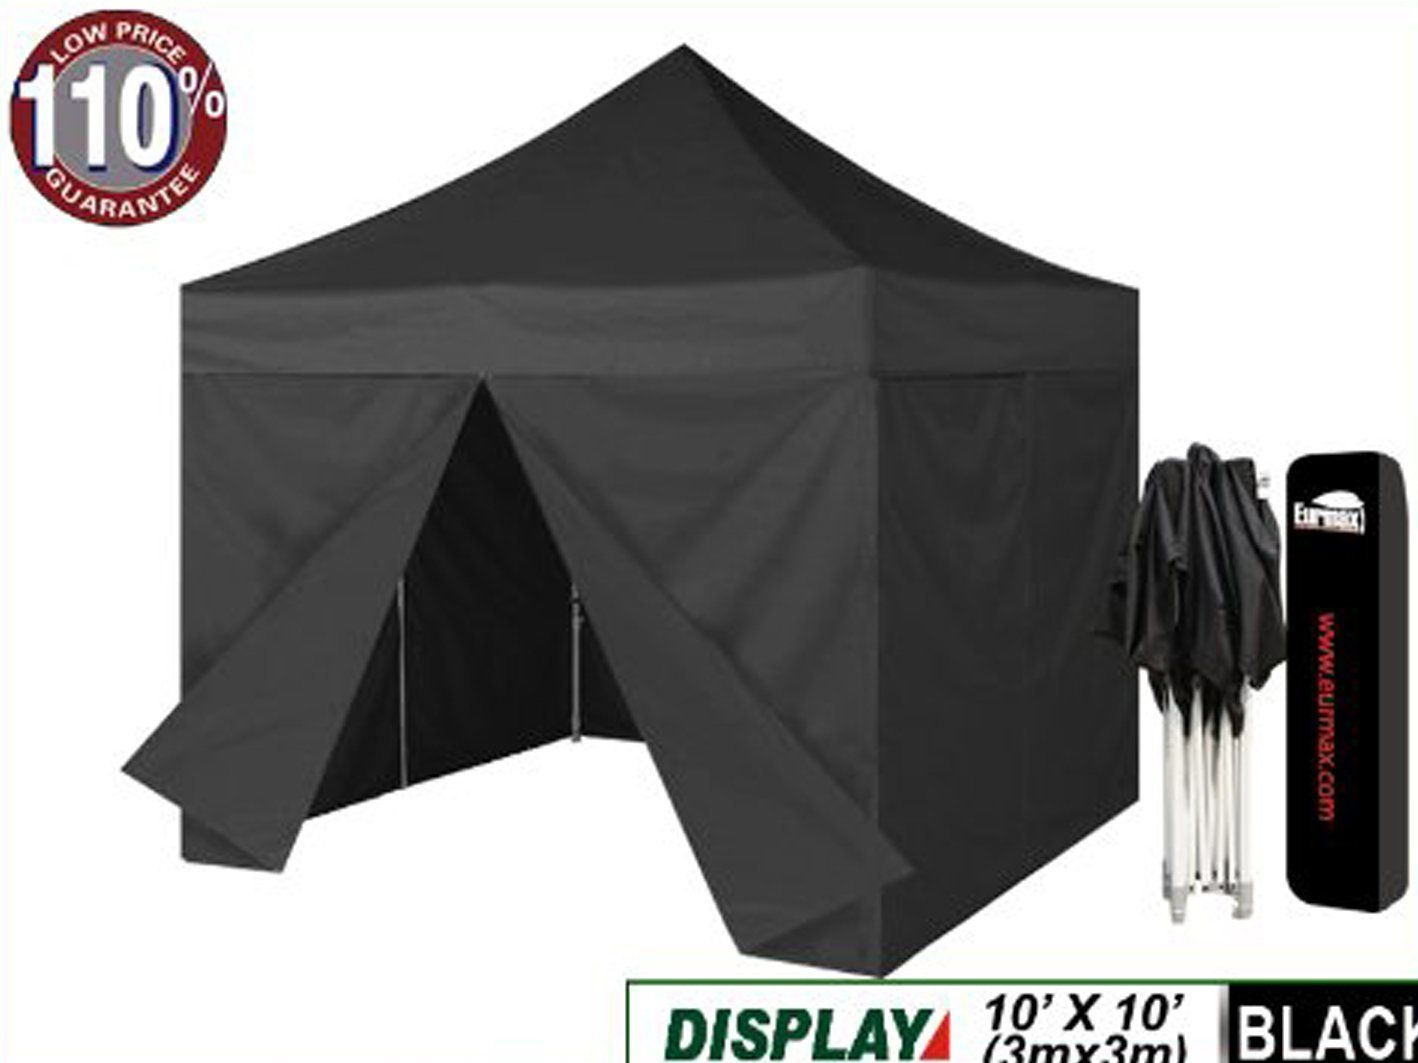 Amazon Com Eurmax 10 X 10 Ez Pop Up Canopy Party Tent Gazebo With 4 Zipper End Sidewalls Walls With Dust Cover Black Canopy Tent Pop Up Canopy Tent Tent